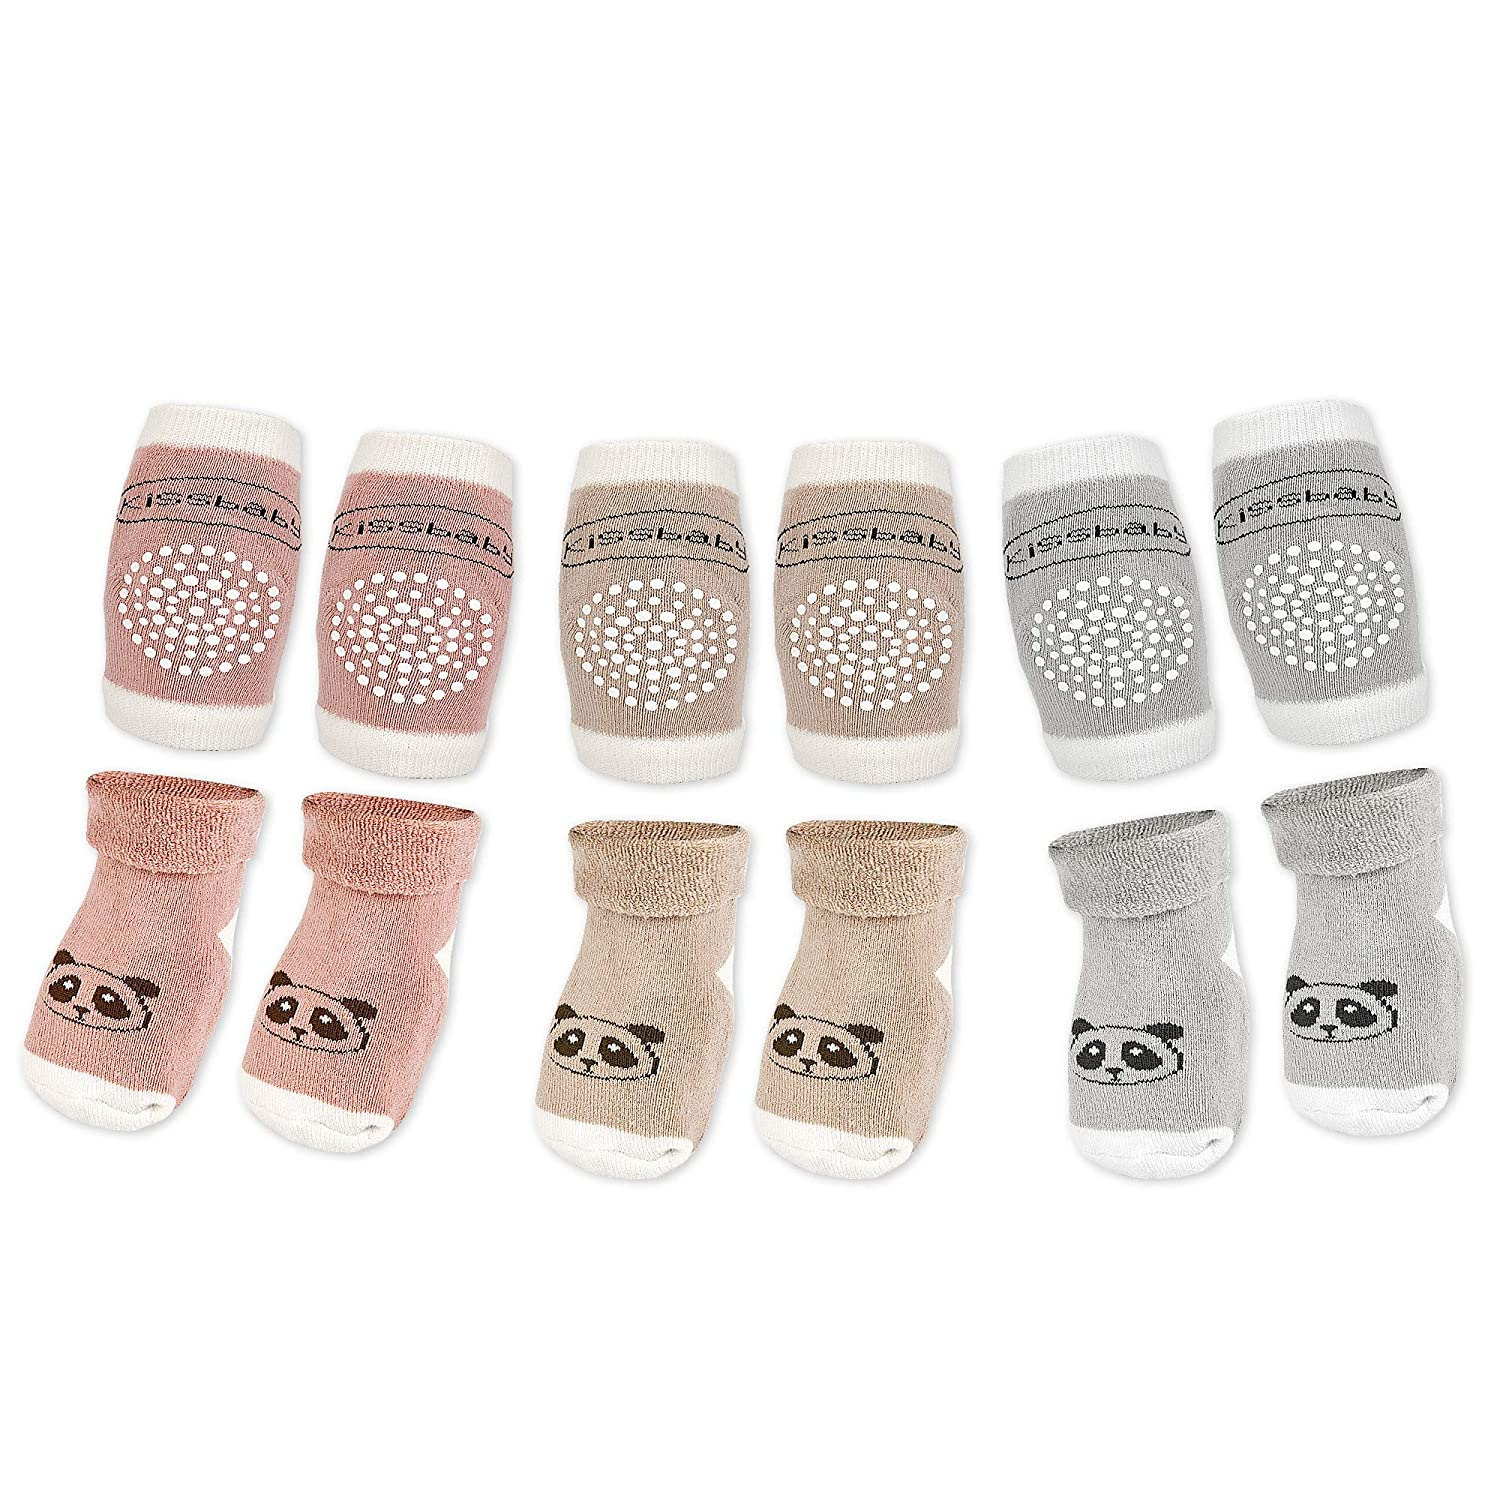 STAYcozy Crawling Anti-Slip Knee Pads and Socks PREMIUM Terry Cotton, 3 Pairs Non Slip Socks/ 3 Pairs Non Slip Knee Pads Toddler, Infant, Baby, Unisex (6 TOTAL PAIRS)